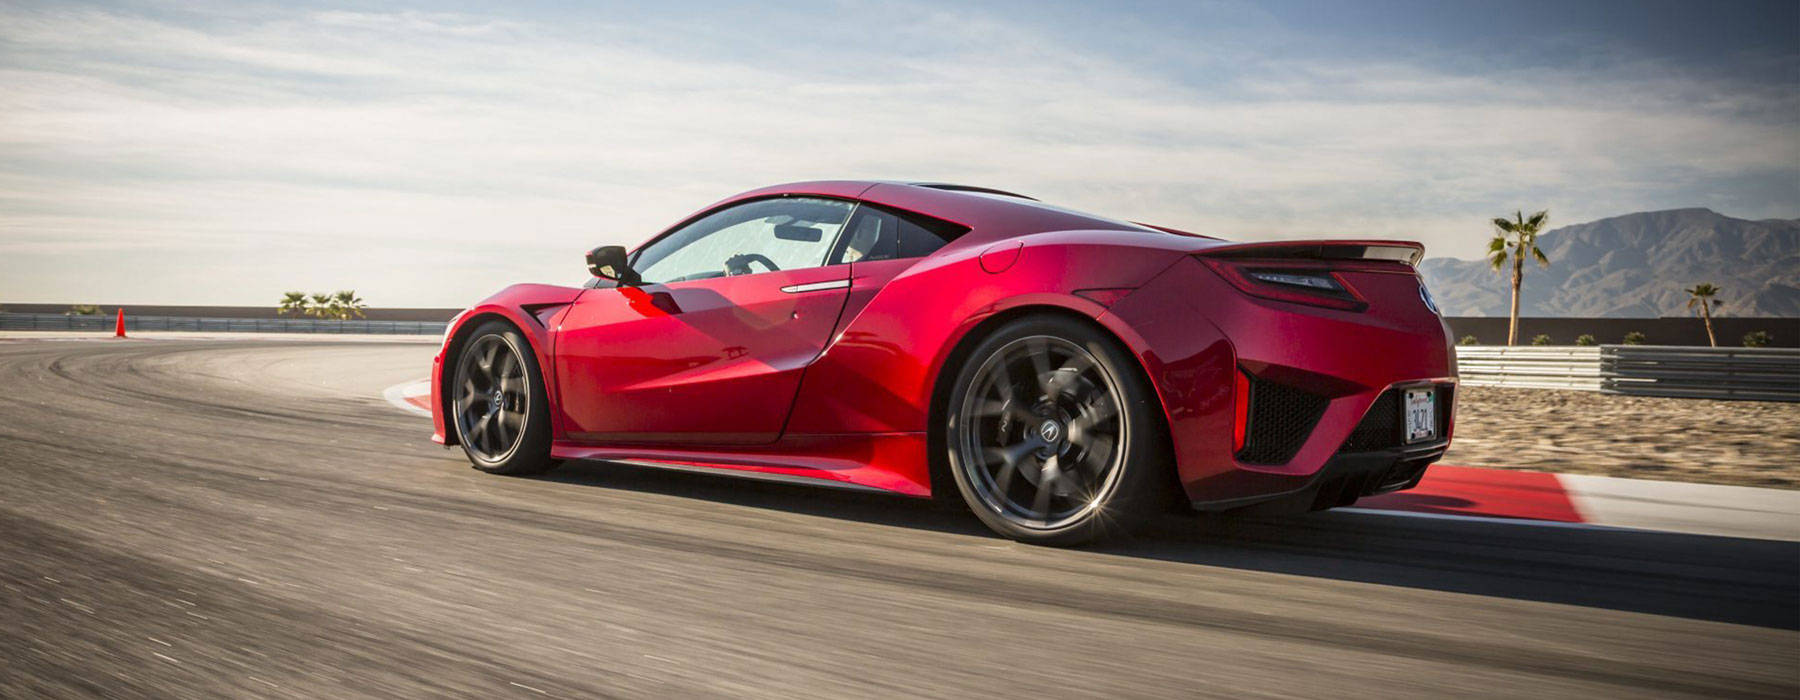 Drive an Acura NSX in Las Vegas or Los Angeles